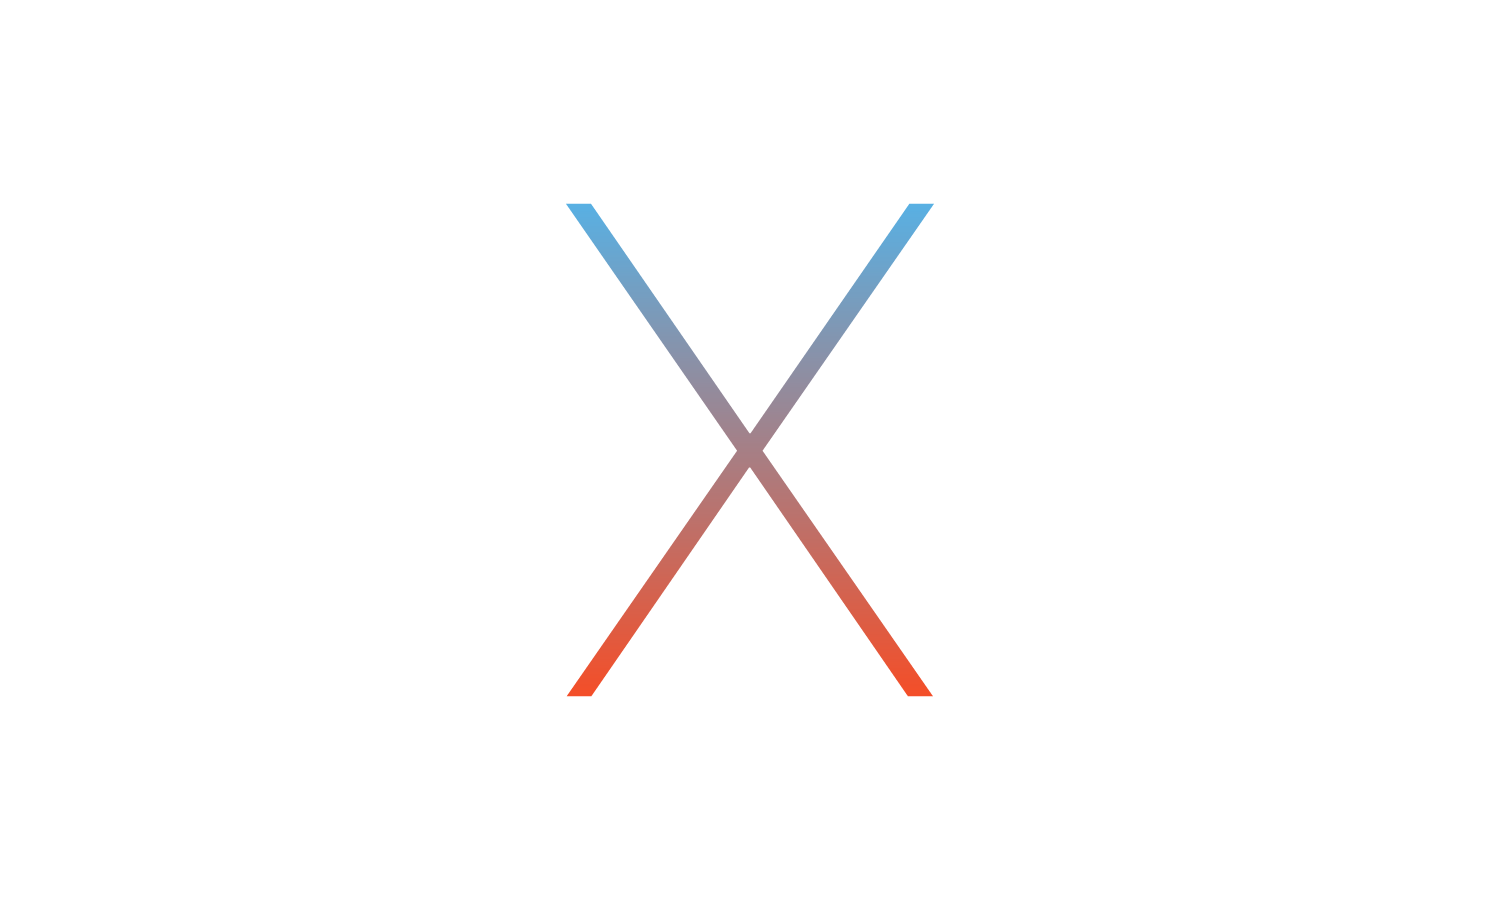 Simulating Poor Network Connectivity on Mac OSX